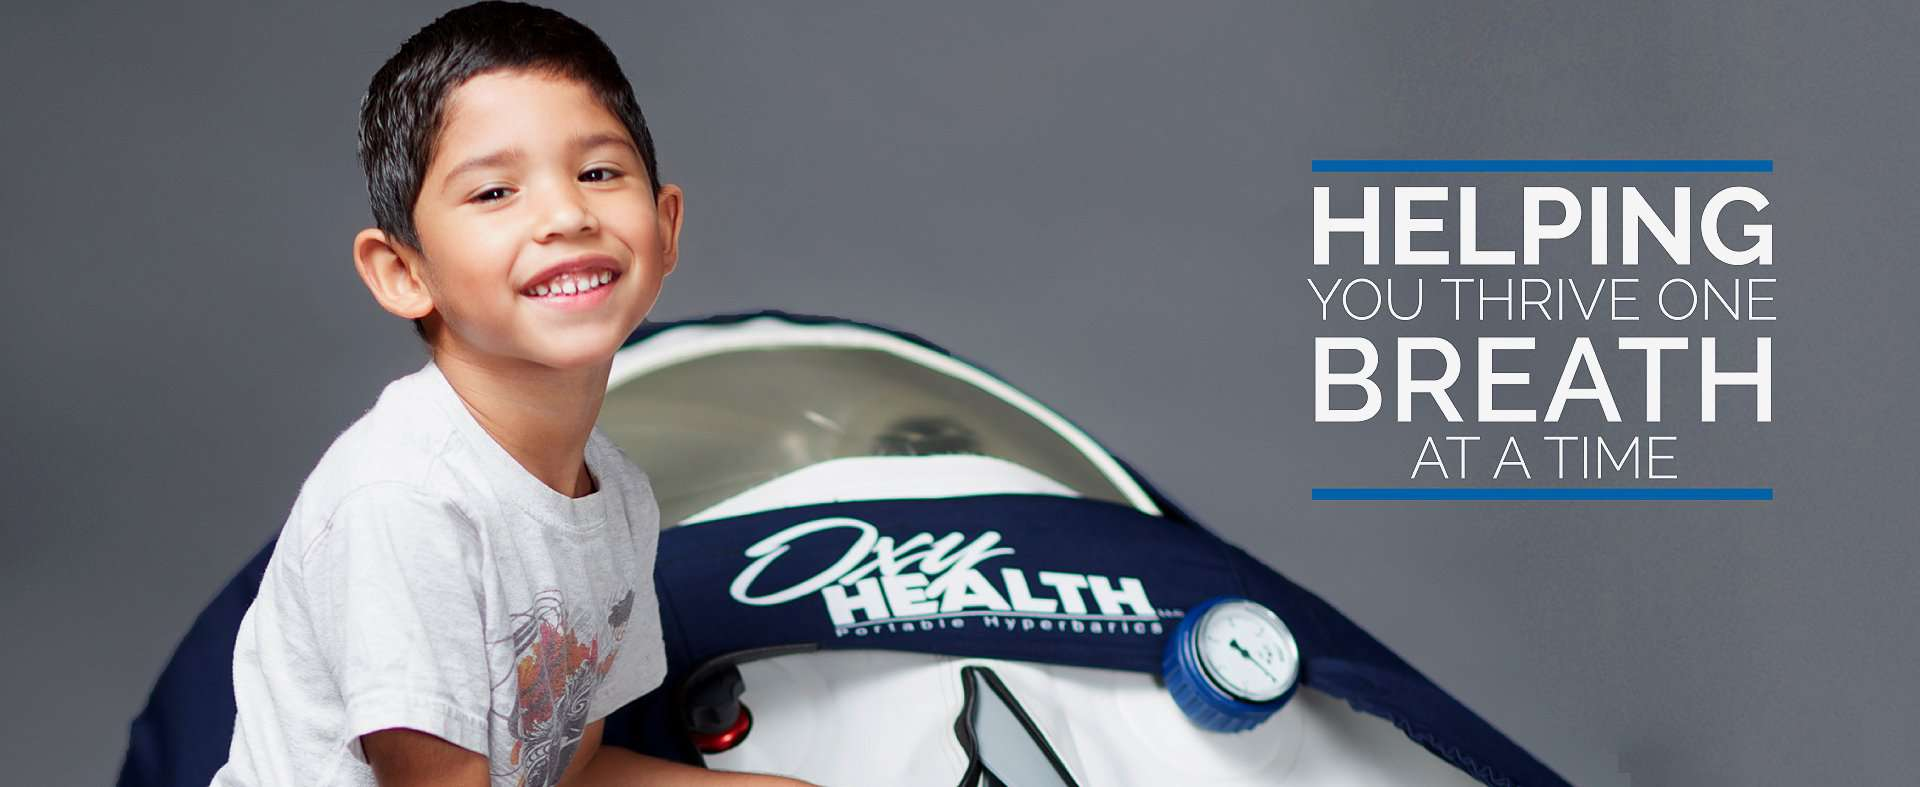 OxyHealth Europe Banner